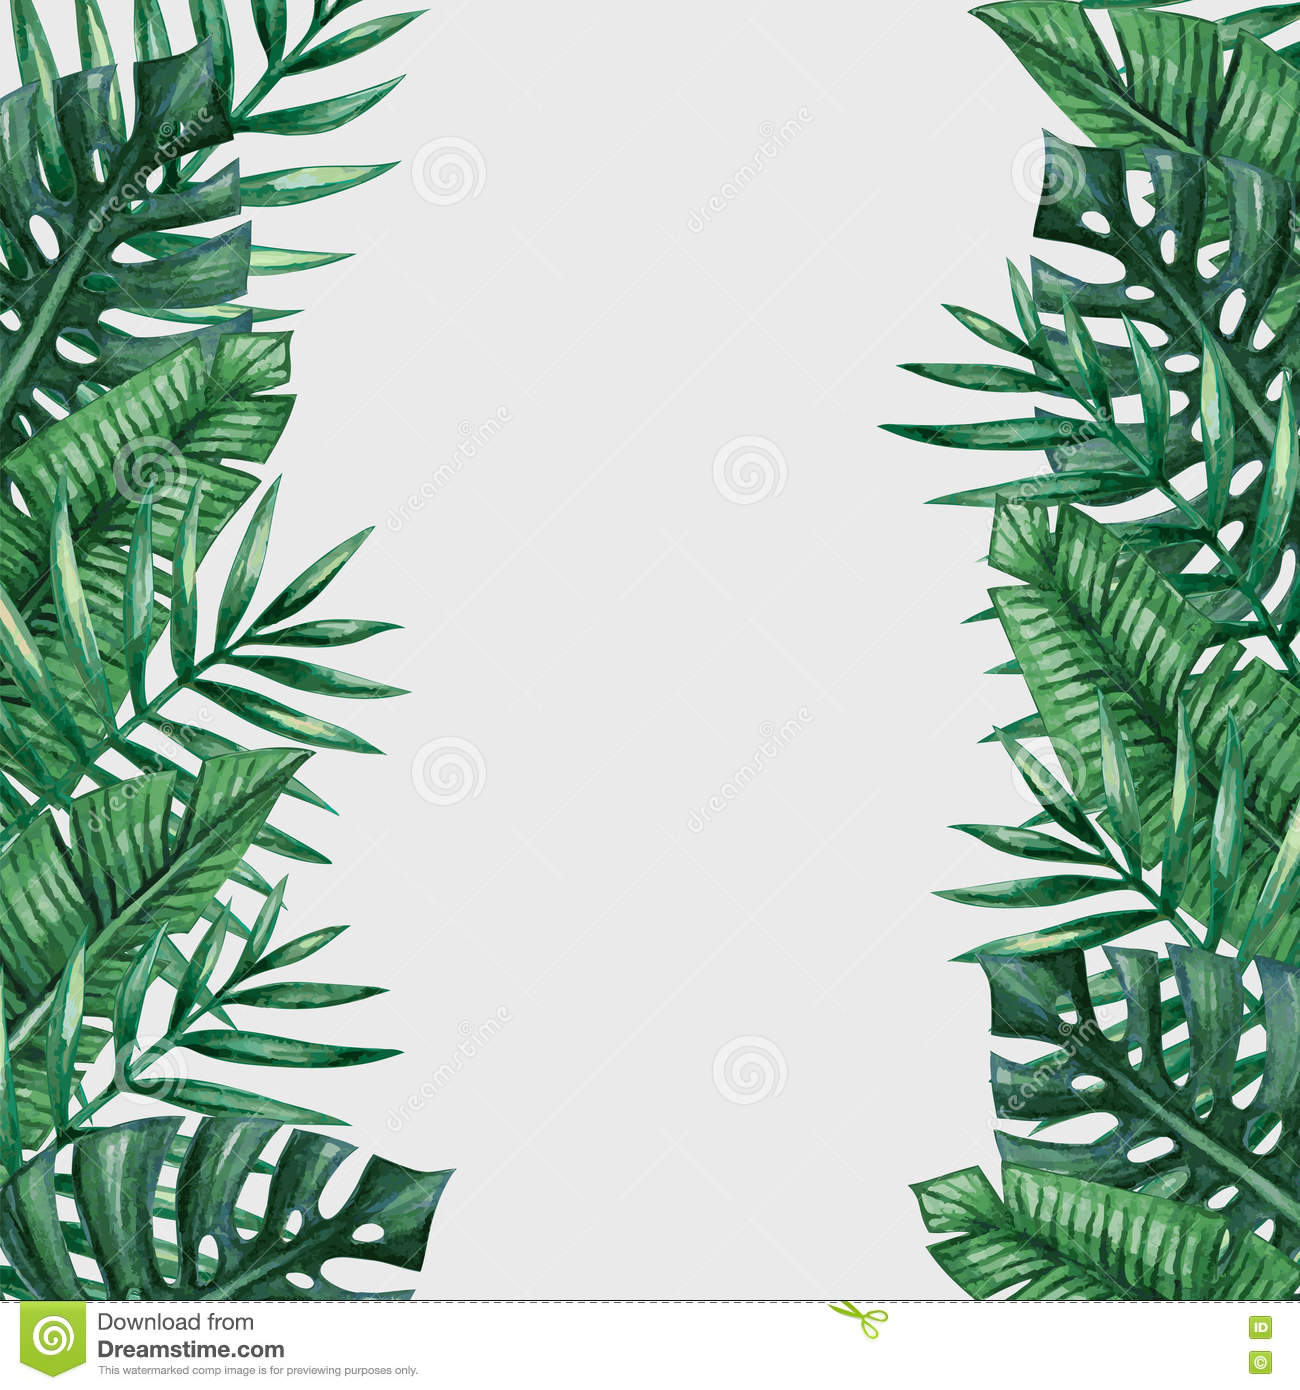 palm tree leaves background template stock illustration image